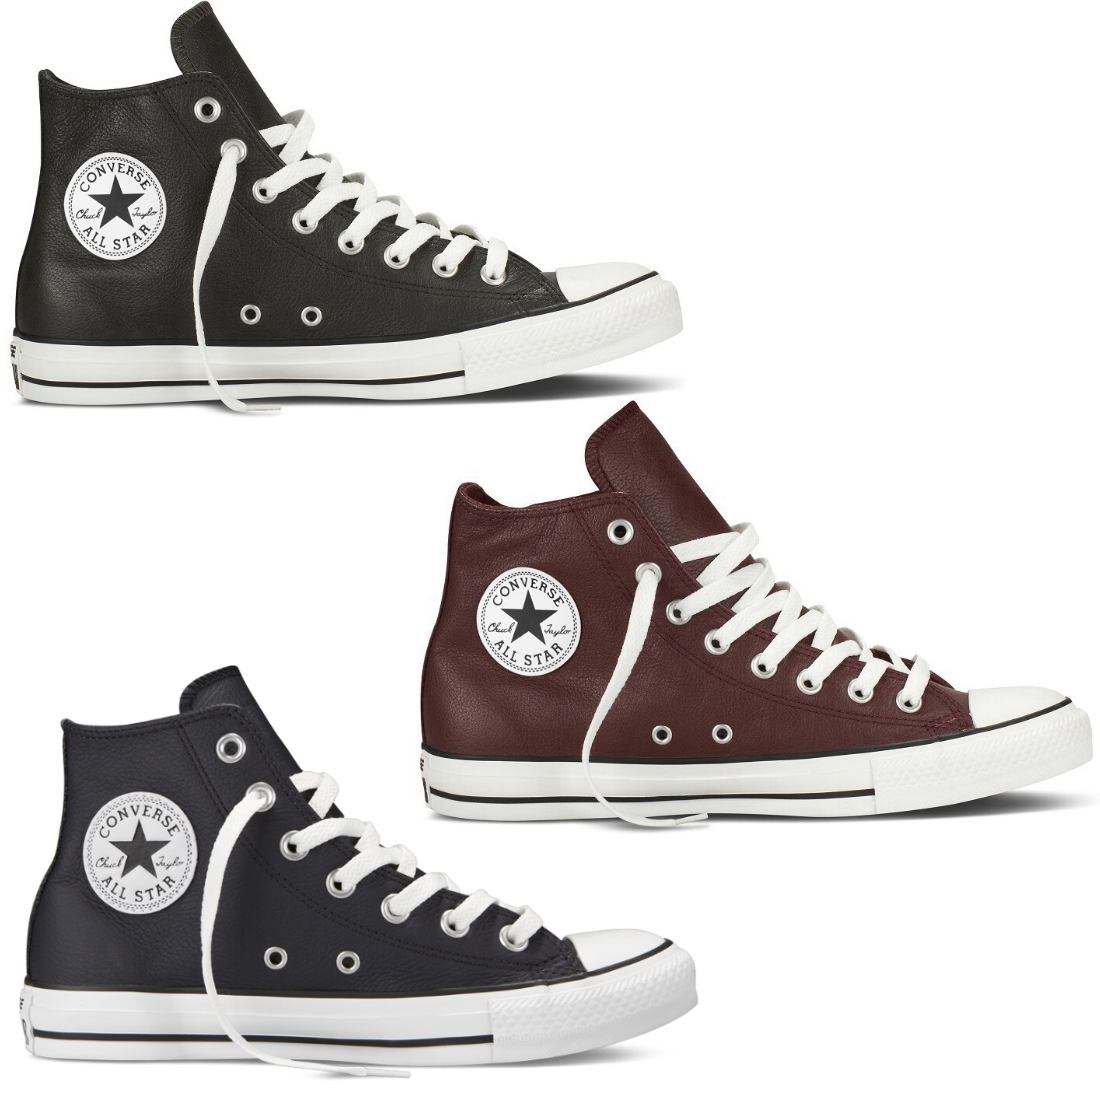 converse chucks herren. Black Bedroom Furniture Sets. Home Design Ideas